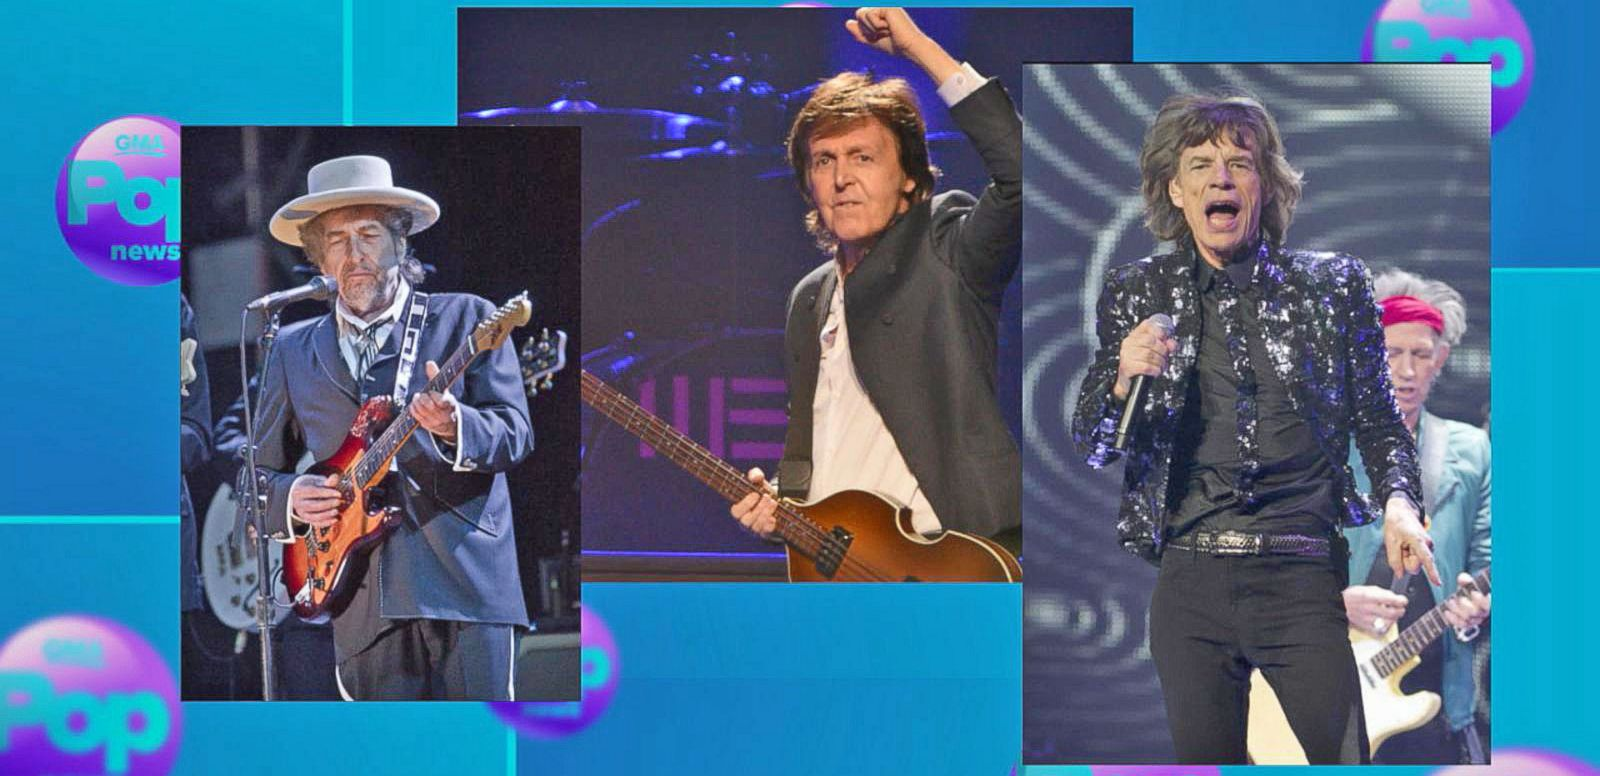 VIDEO: The Rolling Stones, Paul McCartney, Bob Dylan and More Come Together for Fall Concert